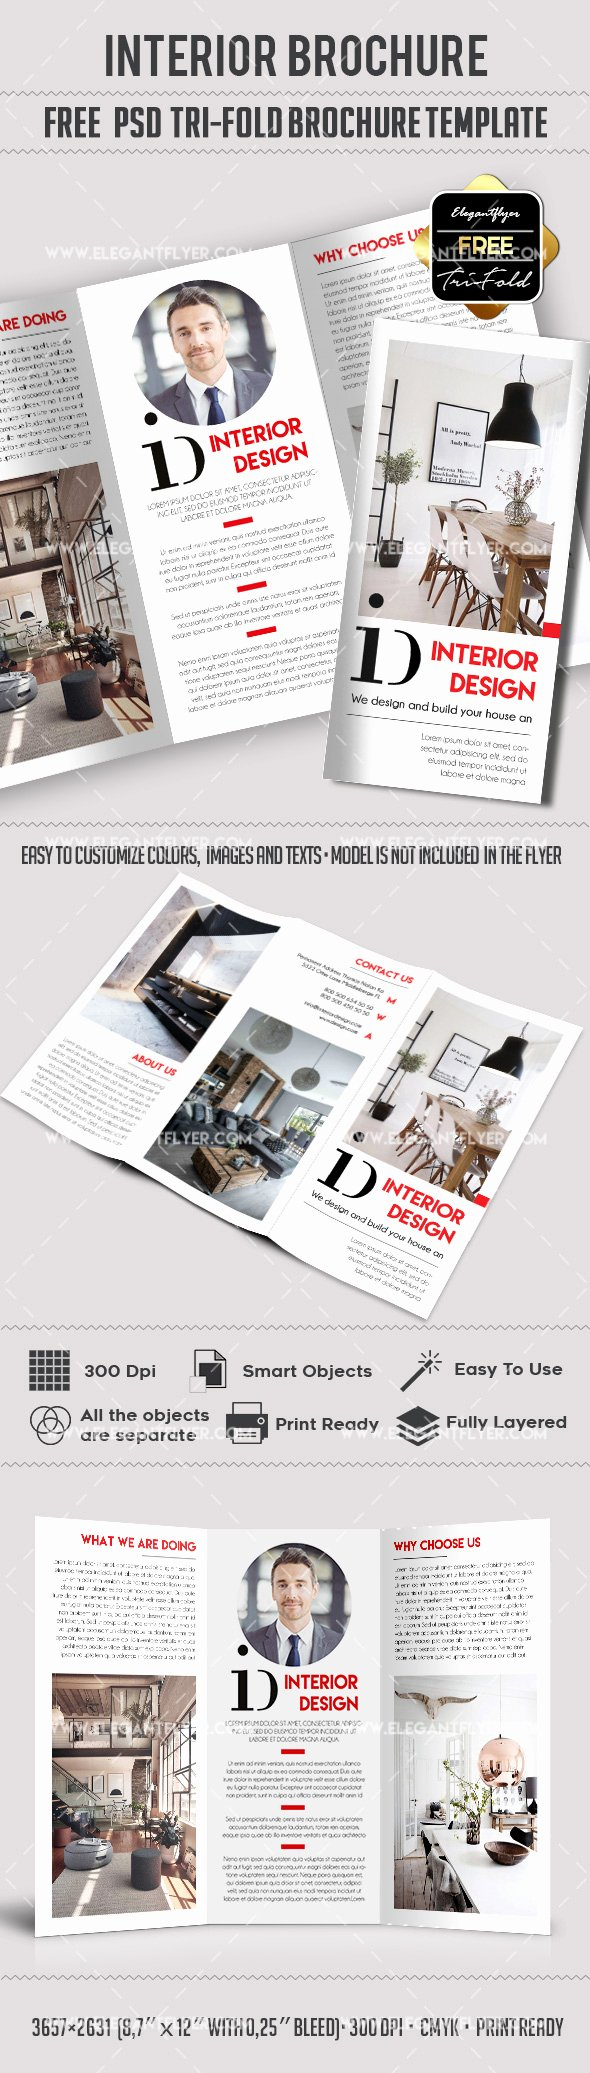 Download Interior Design – Free Psd Tri Fold Psd Brochure